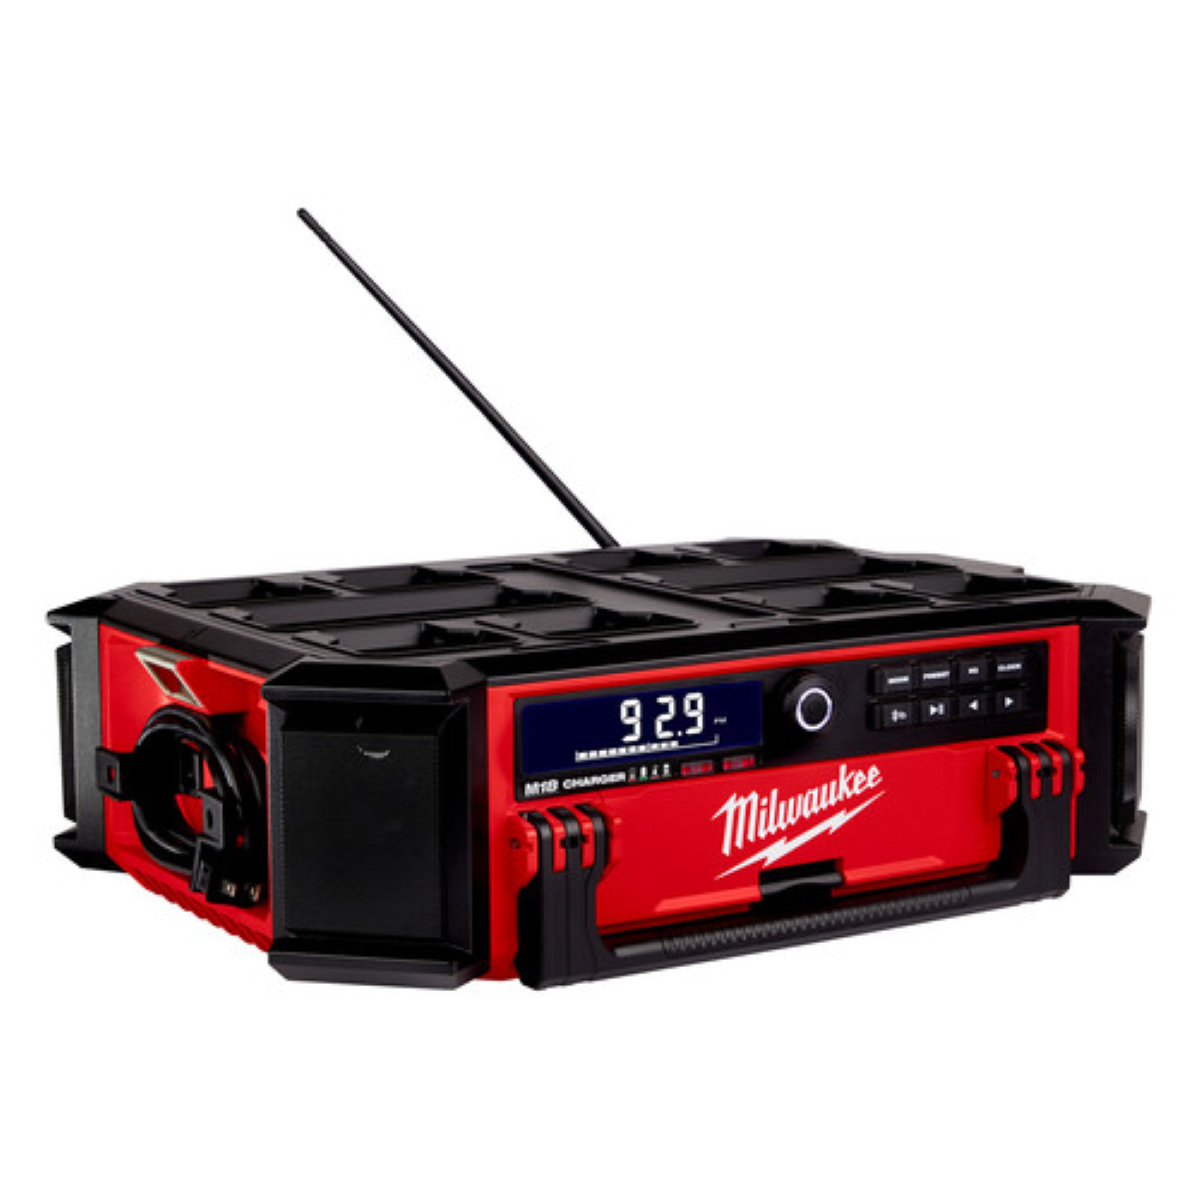 M18 PACKOUT Radio & Charger - Powerful Internal Antenna